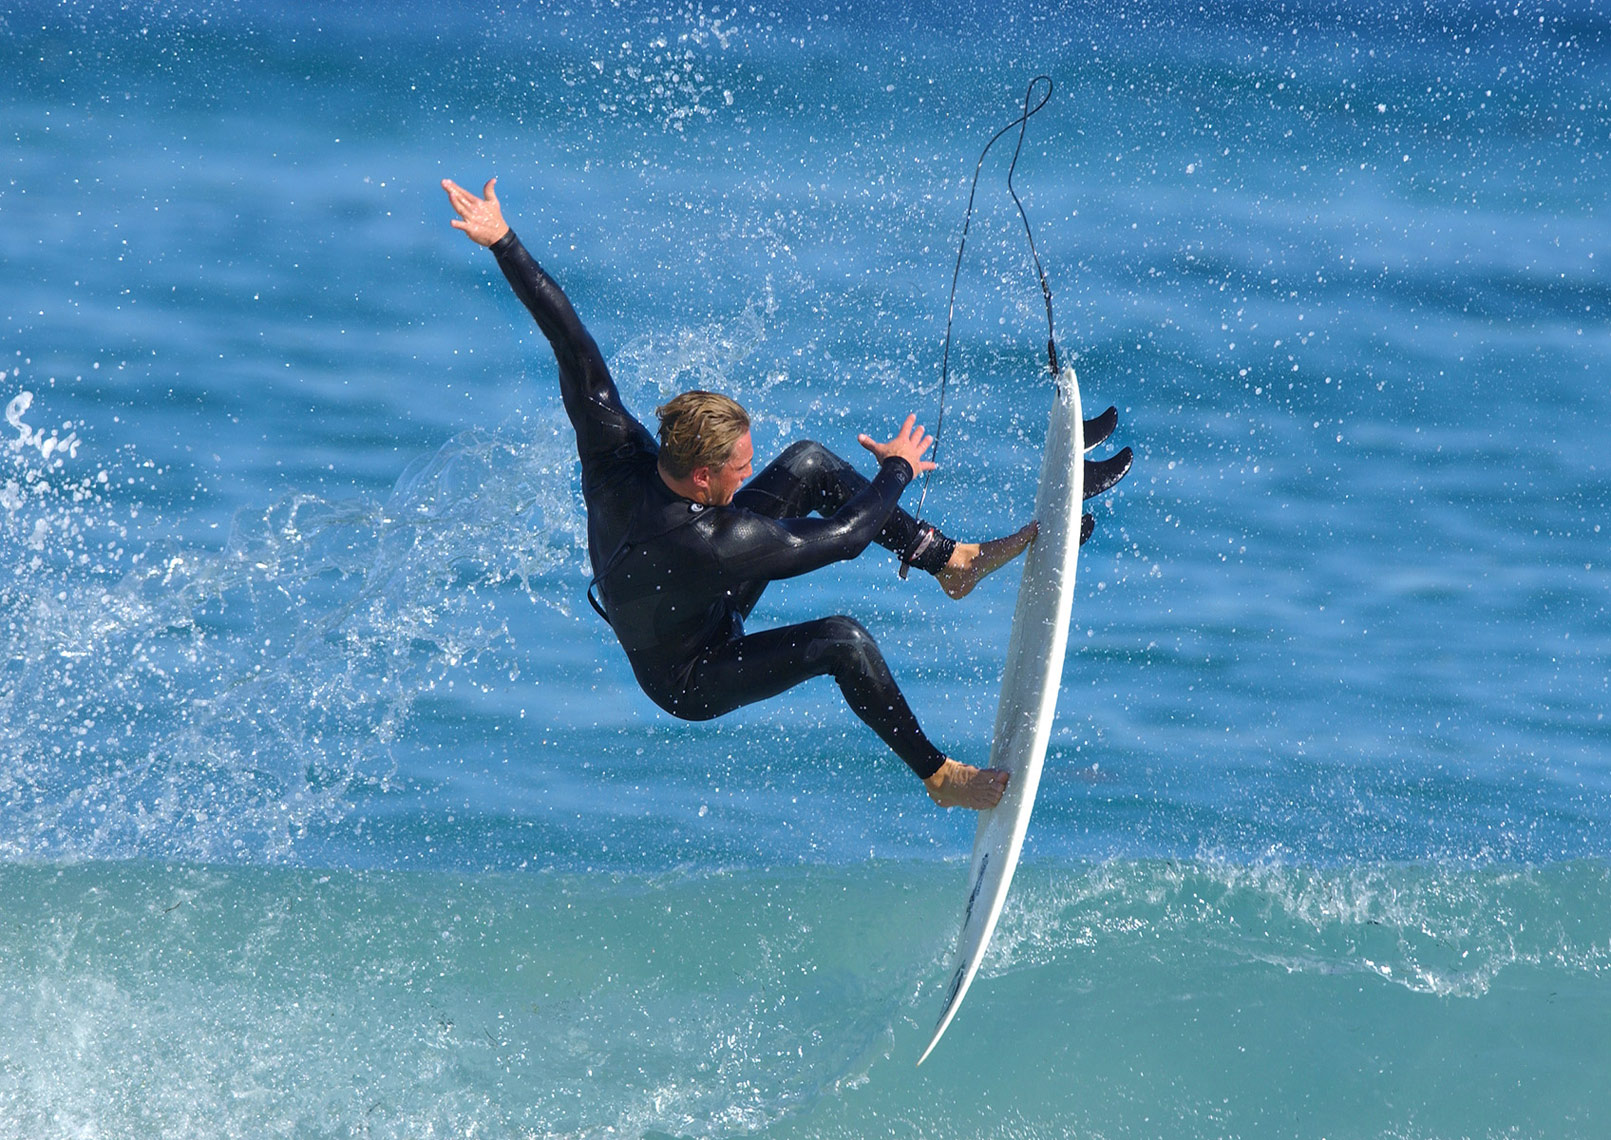 Scott_Pritchett_surfing